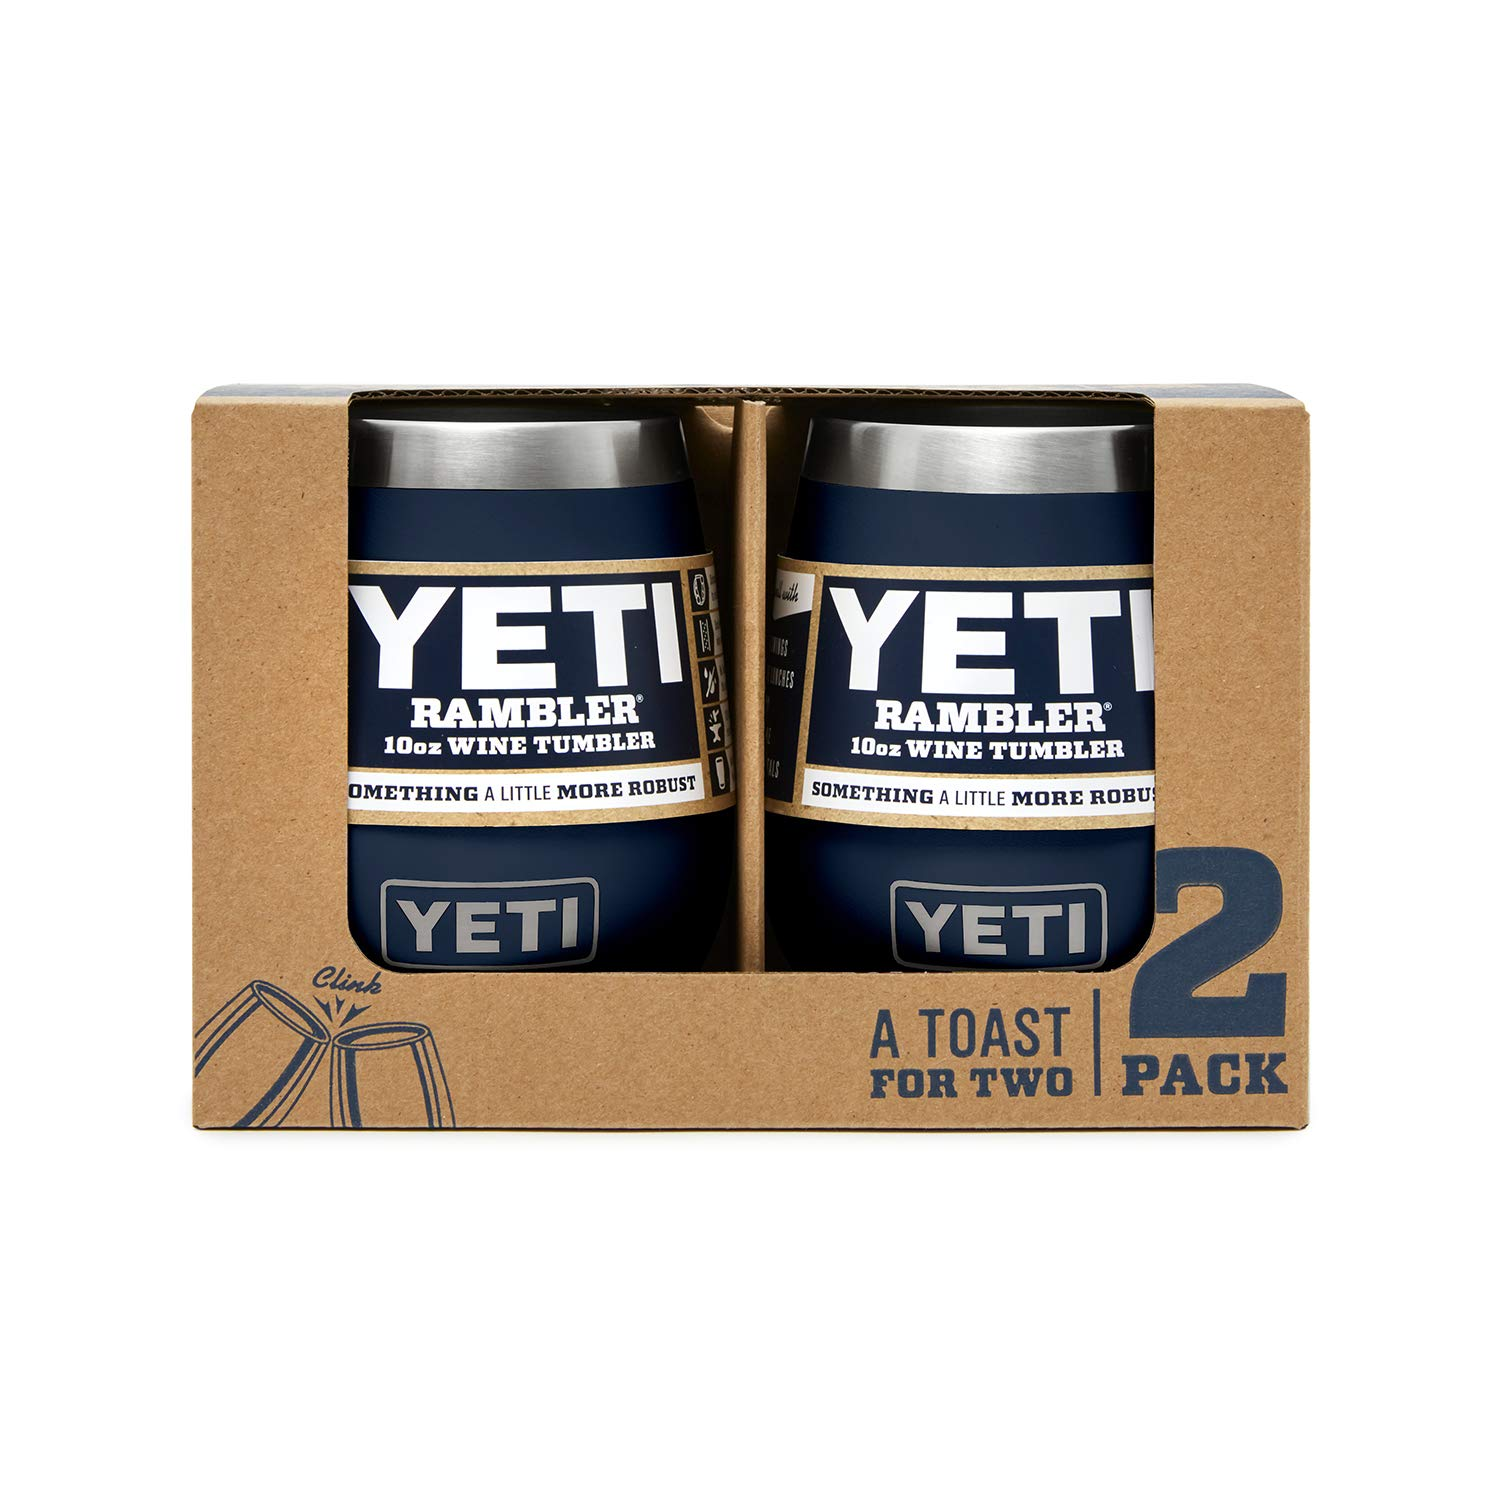 YETI Rambler 10 oz Stainless Steel Vacuum Insulated Wine Tumbler, 2 Pack, Navy